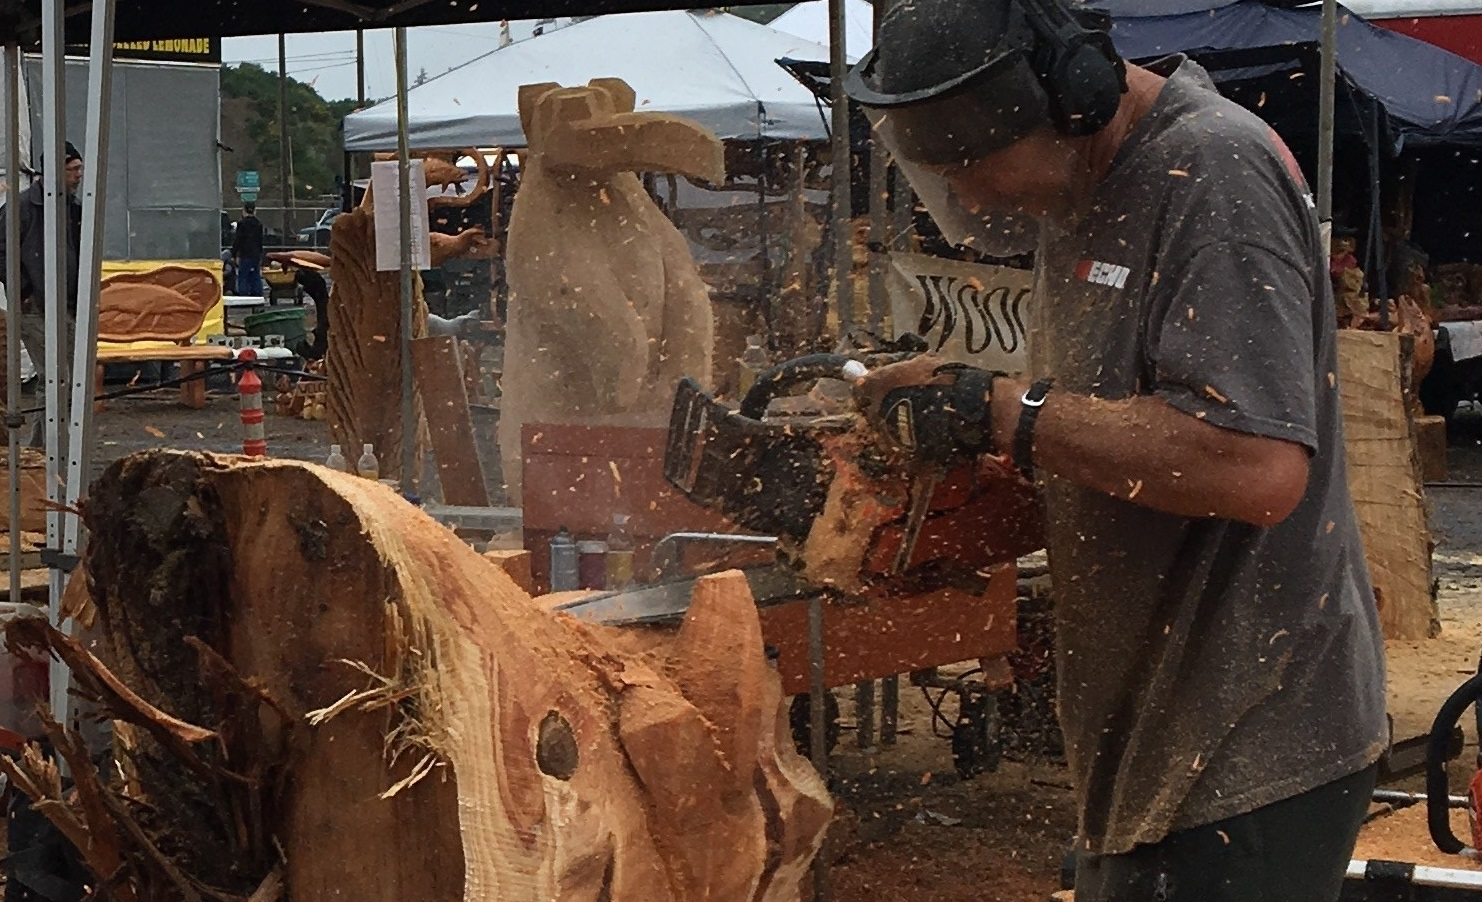 Chainsaw carving championships brings carvers from around